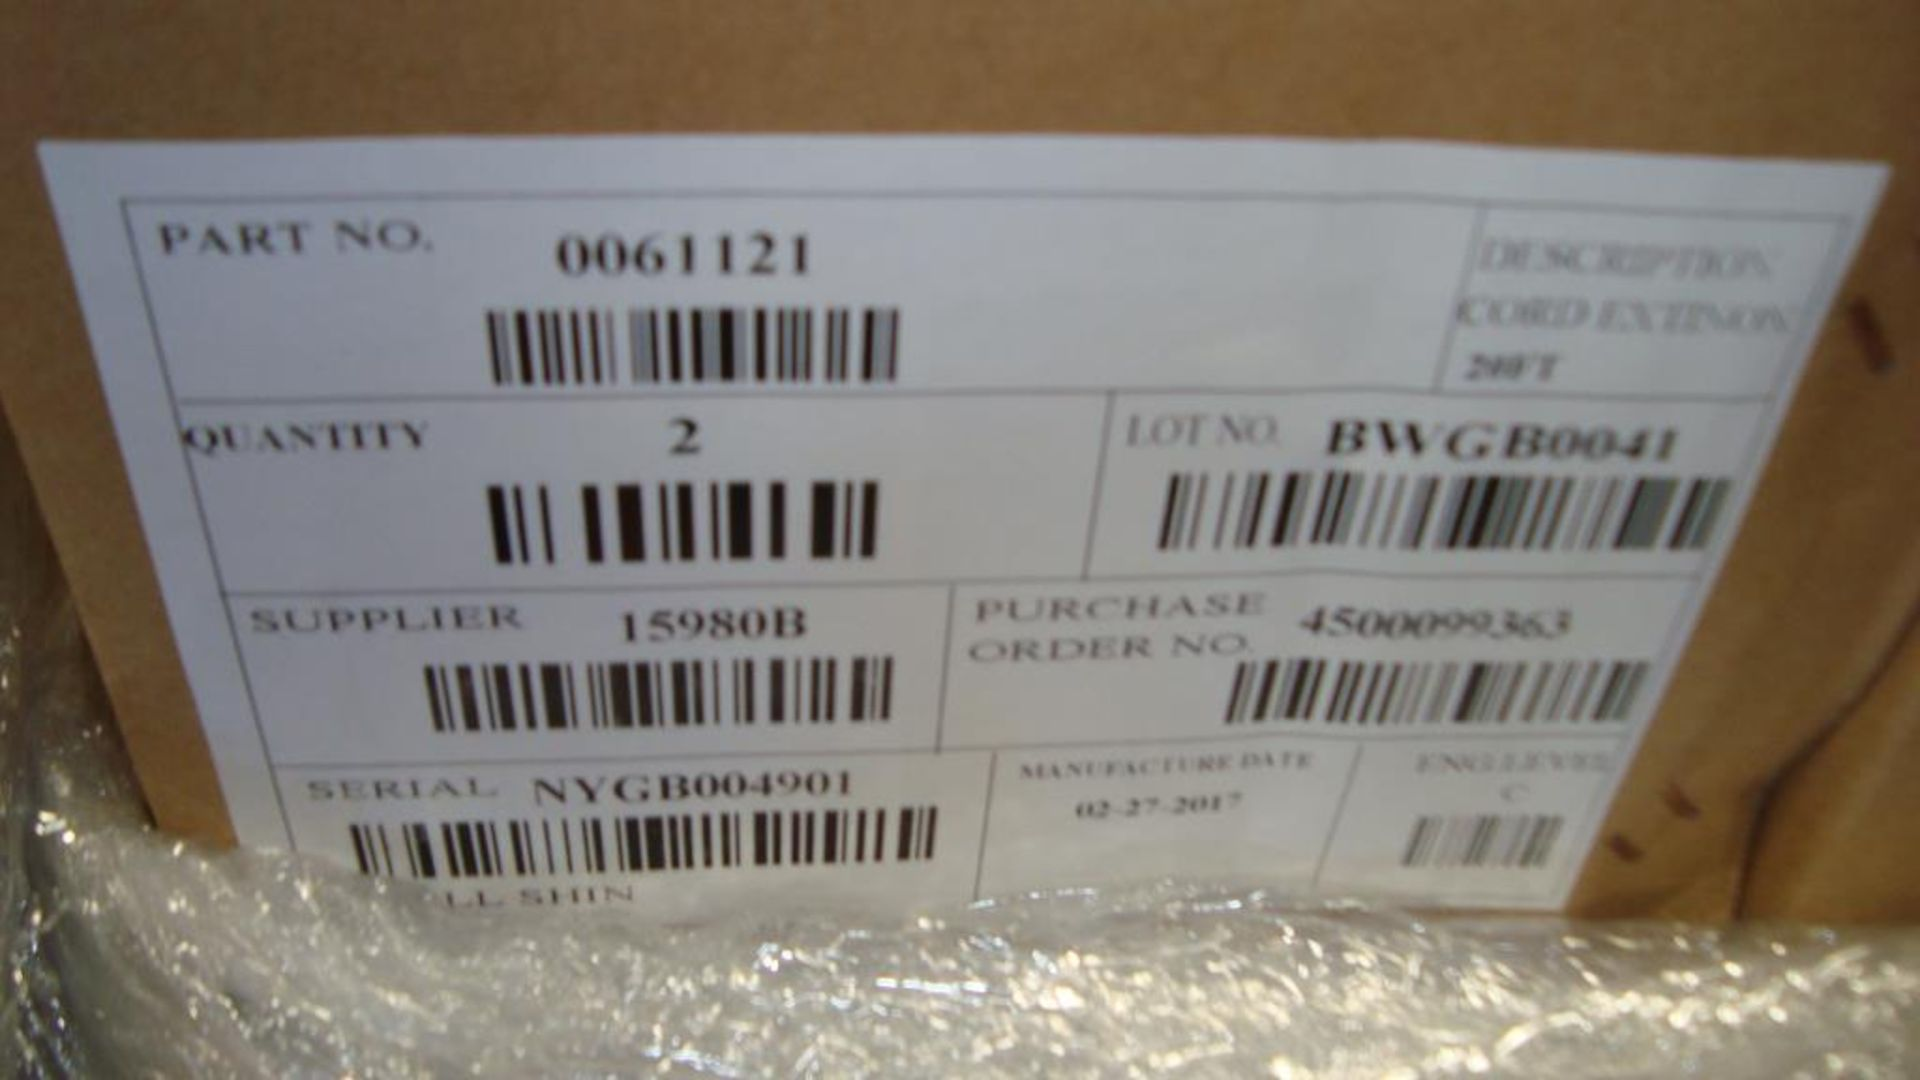 Extension Cords. Lot: 90 Total (45 Boxes - 2 ea.) Generac pn# 0061121-1 20ft, 30A Power Distribution - Image 8 of 8